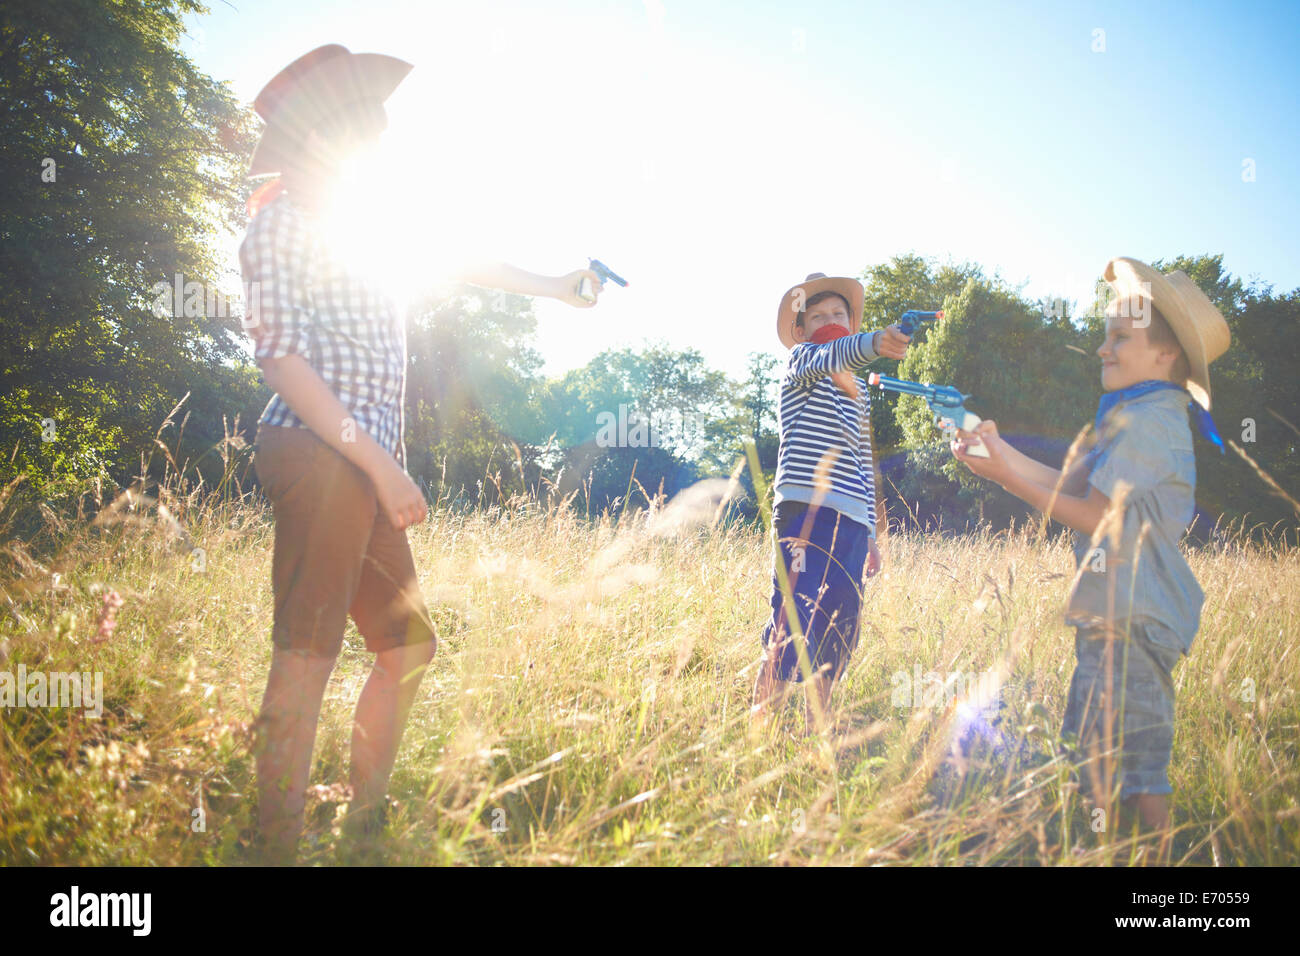 Three young boys dressed as cowboys, holding toy guns - Stock Image